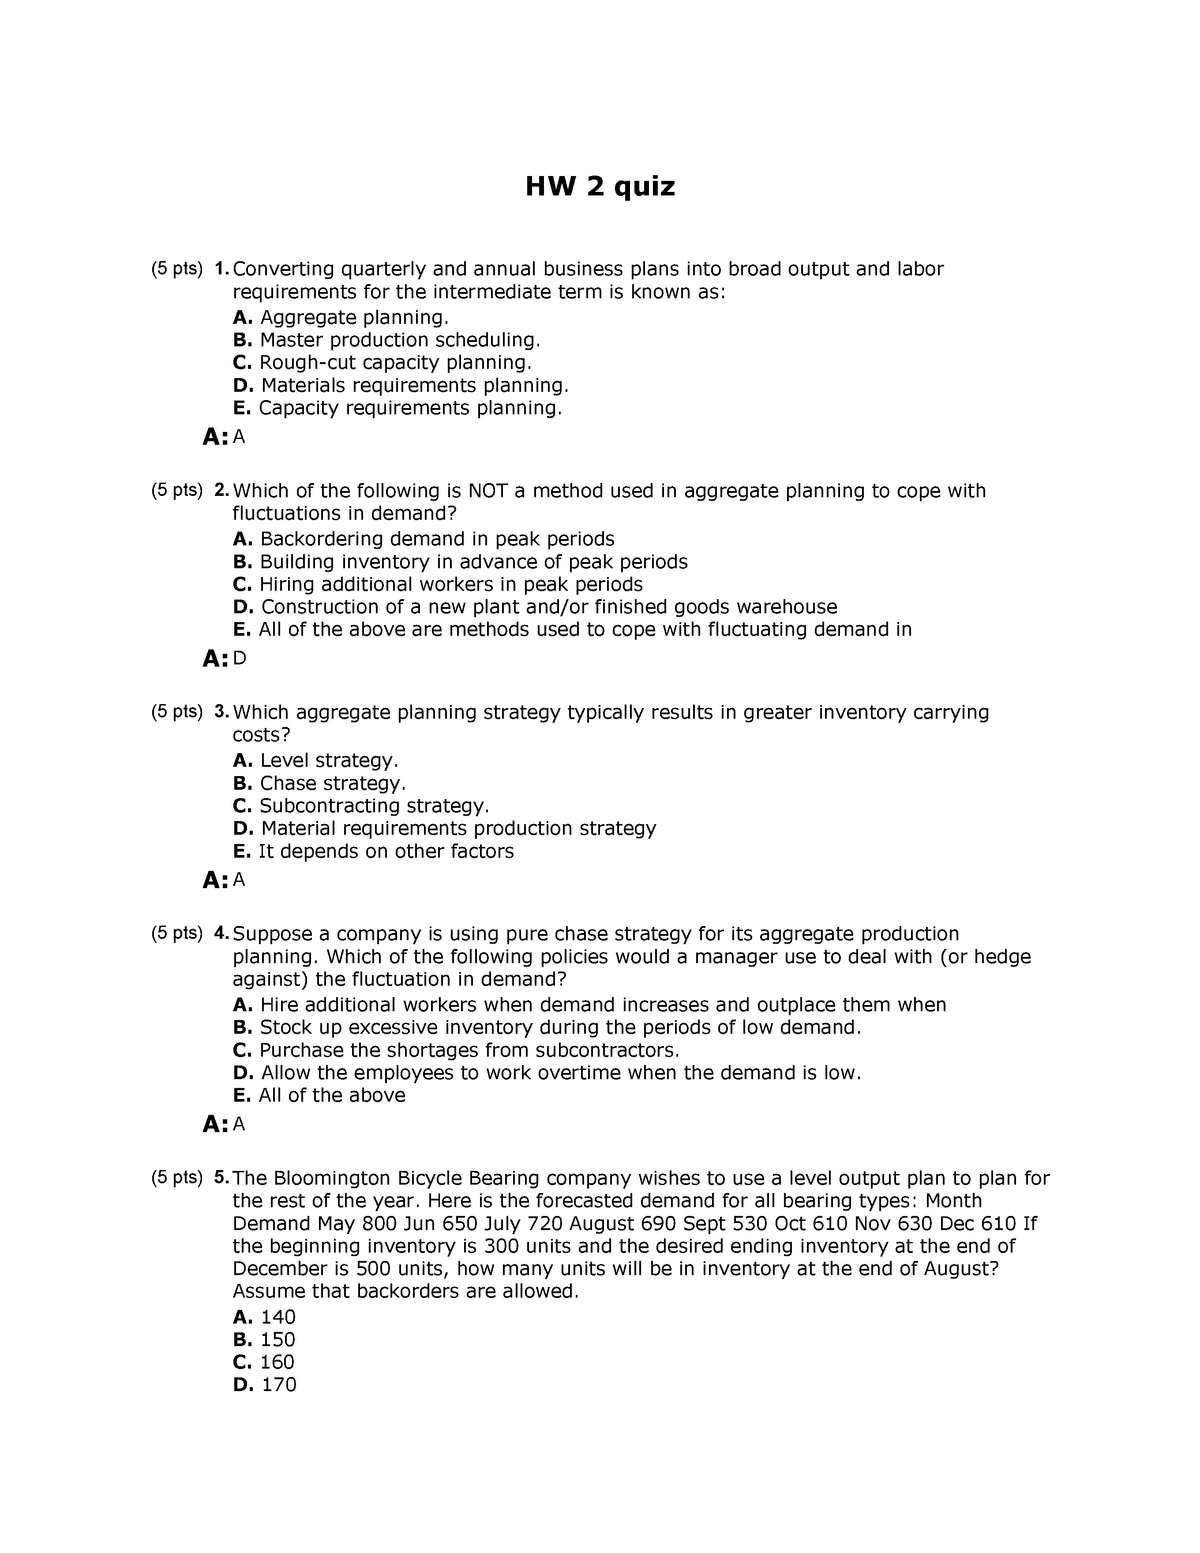 HW2+quiz+with+answers - BUS P370: I-Core - Operations Component